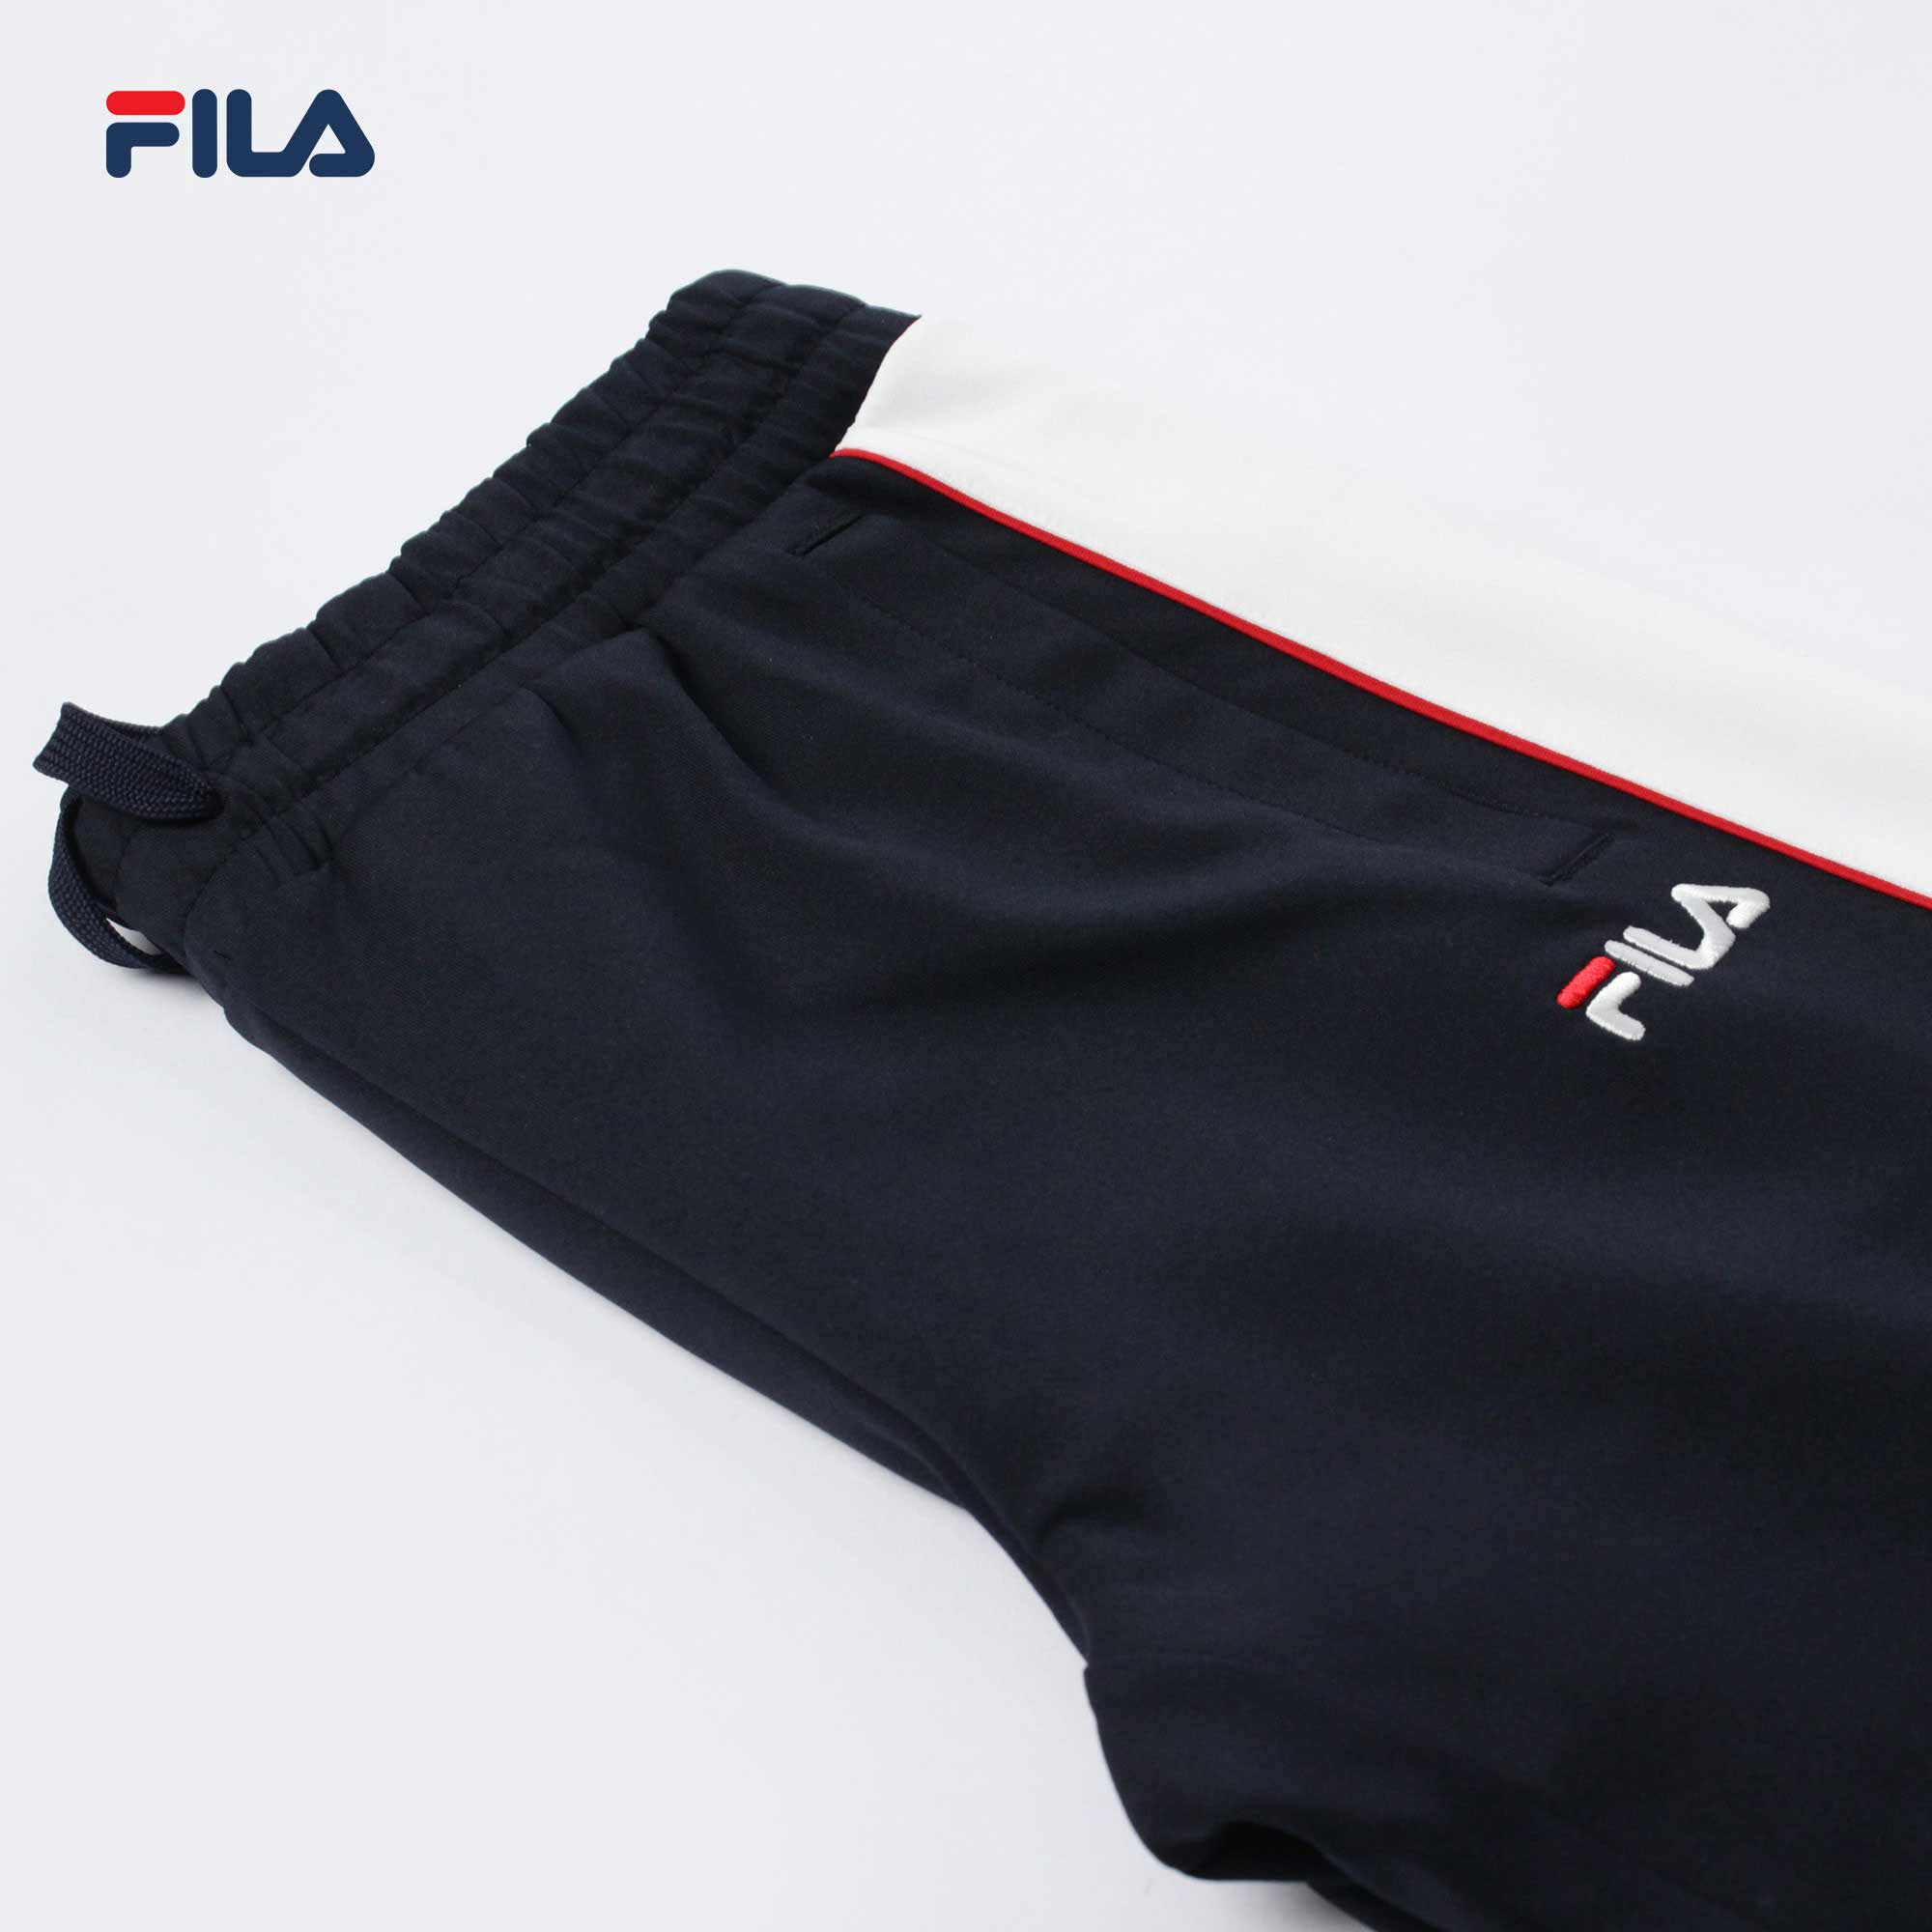 Fila White Line Fleece Pants (INA)